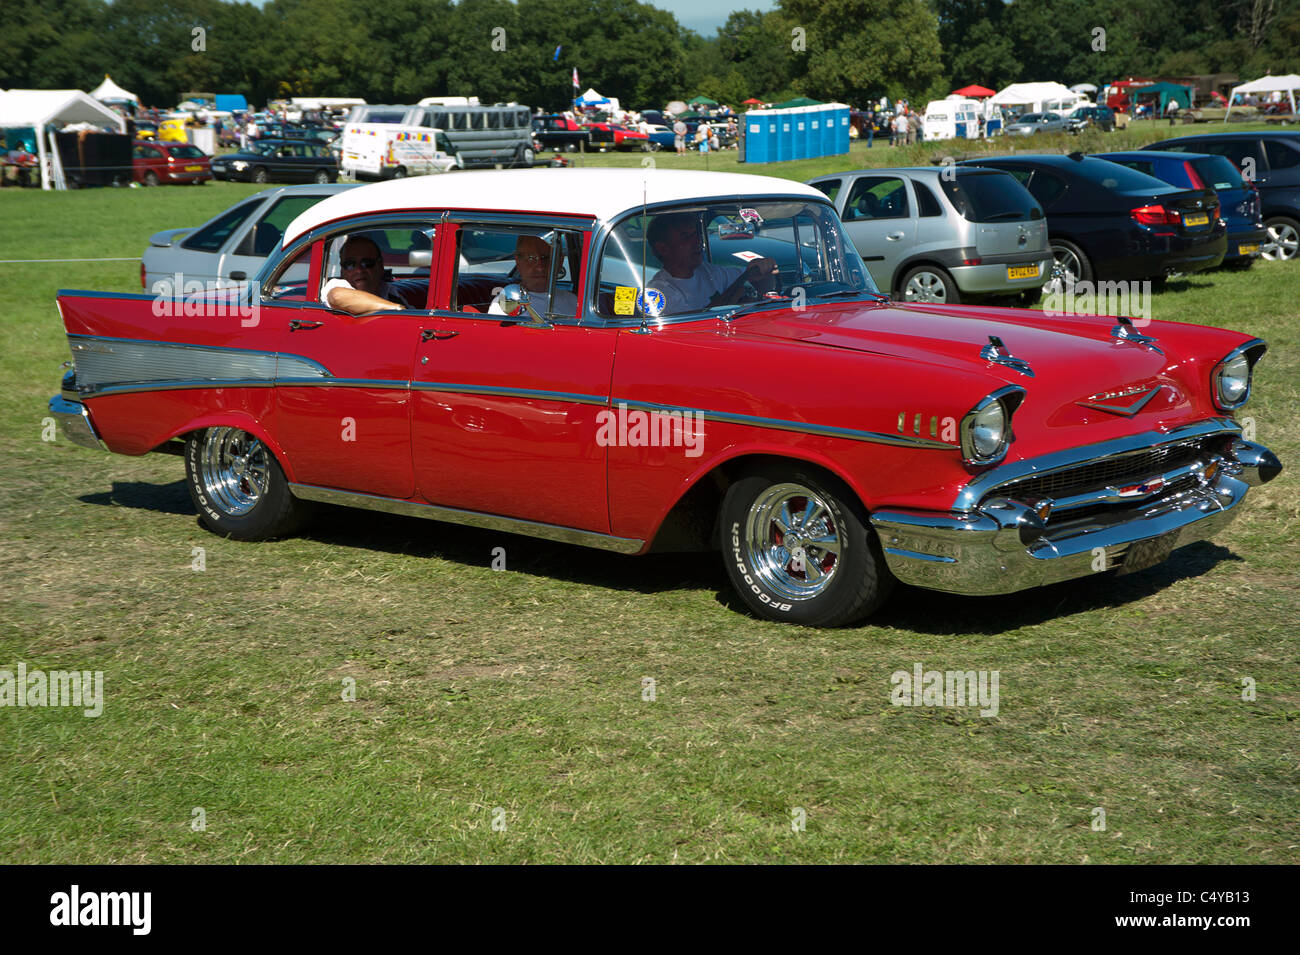 1957 CHEVROLET BEL AIR being driven at car show Stock Photo ...